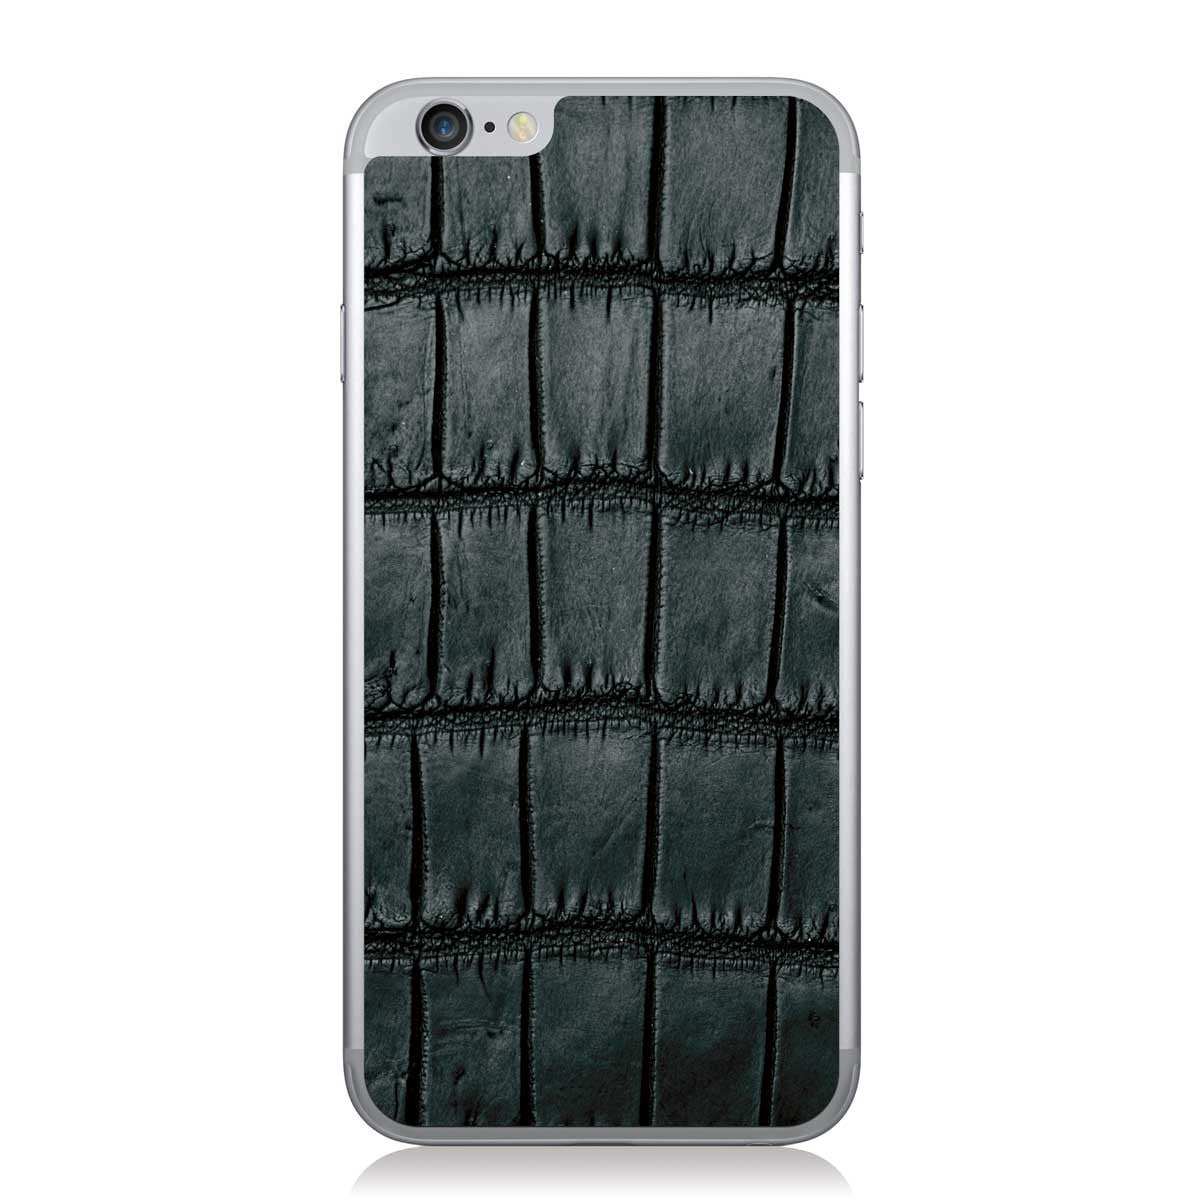 Black Oiled American Alligator iPhone 6/6s Leather Skin